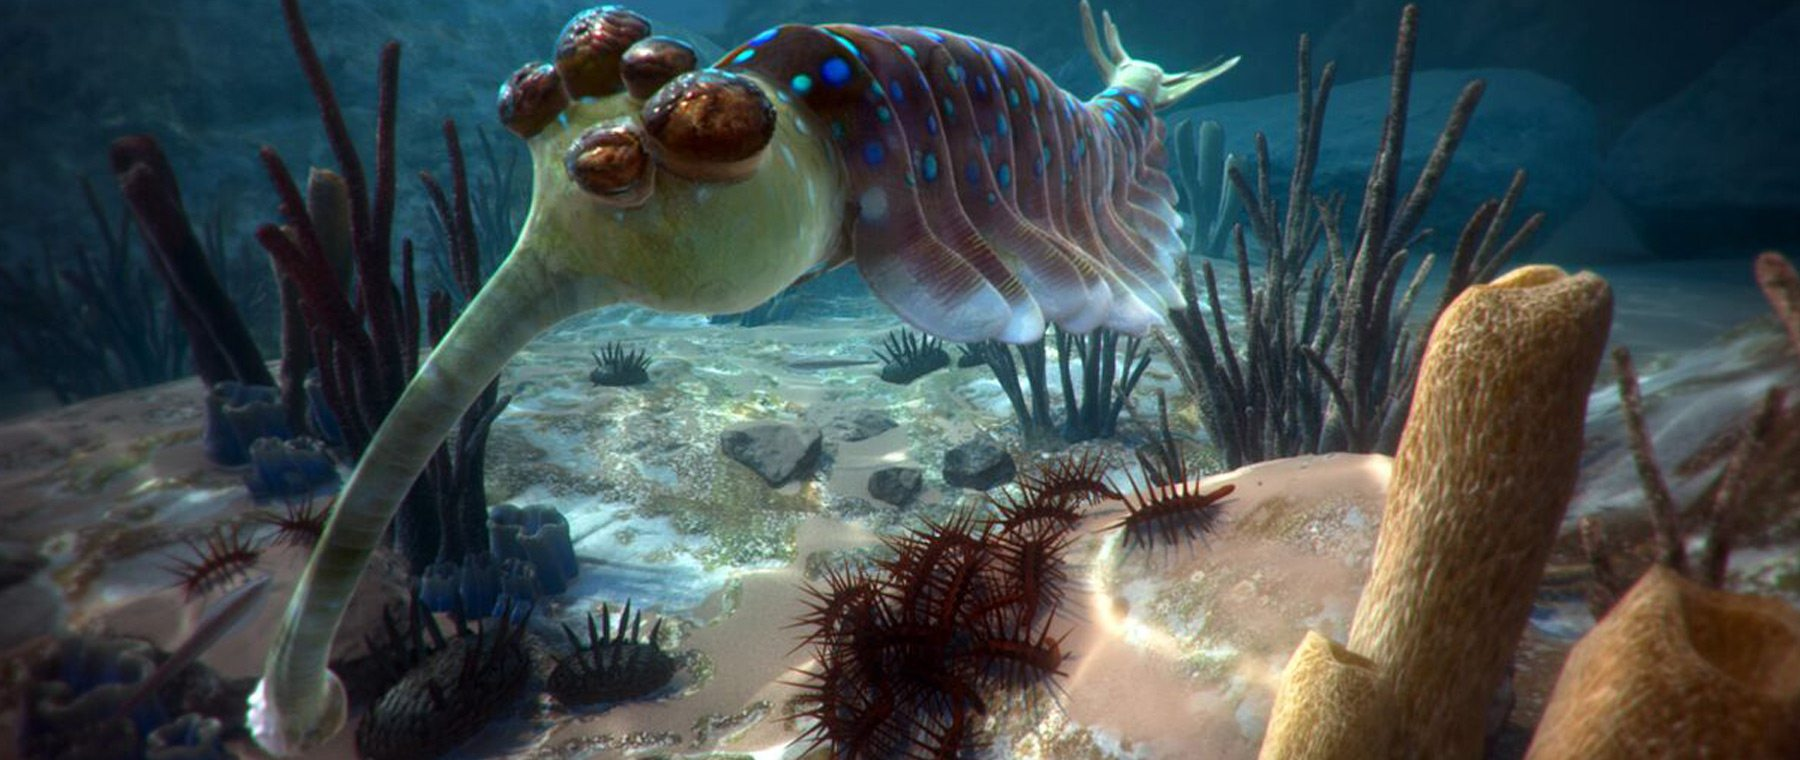 Future tech to peer at past — Museum's virtual reality immerses viewers in ancient oceans